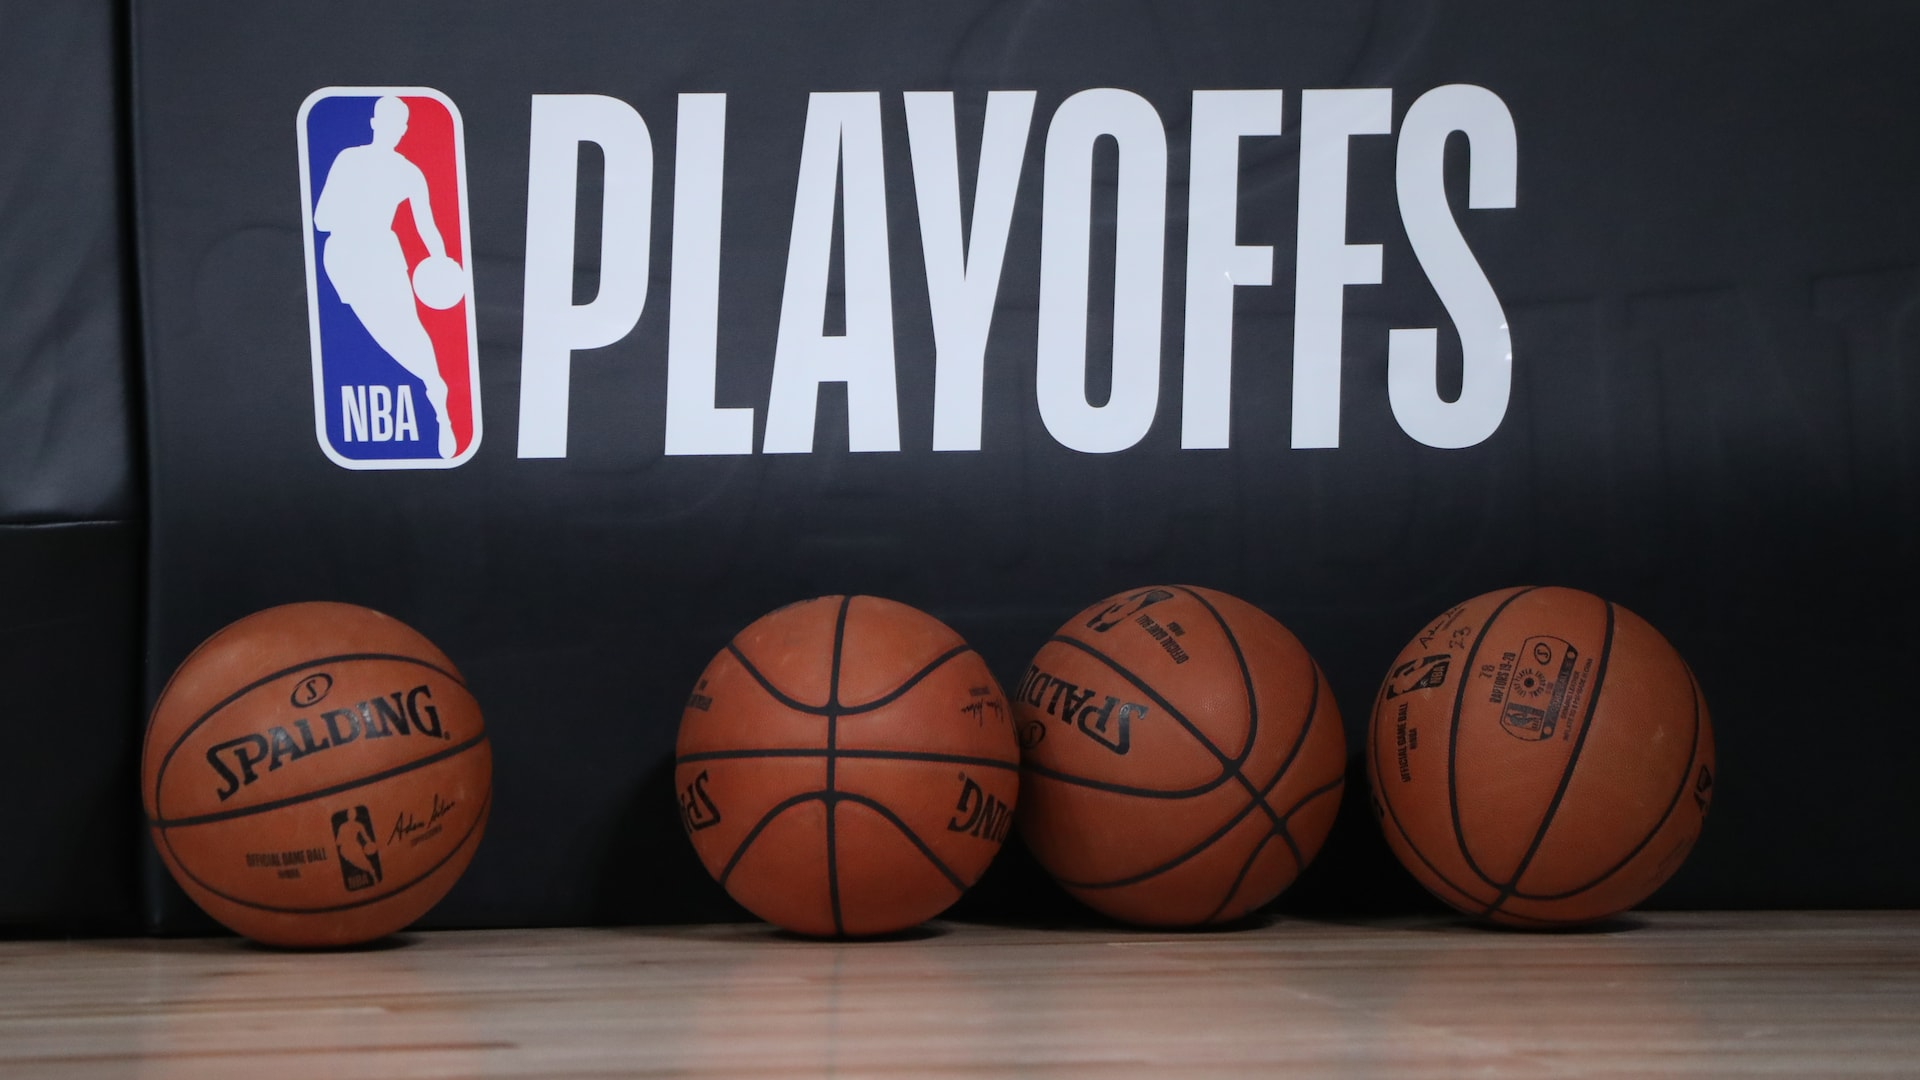 2020 NBA Playoffs: Saturday, Sunday first-round schedules